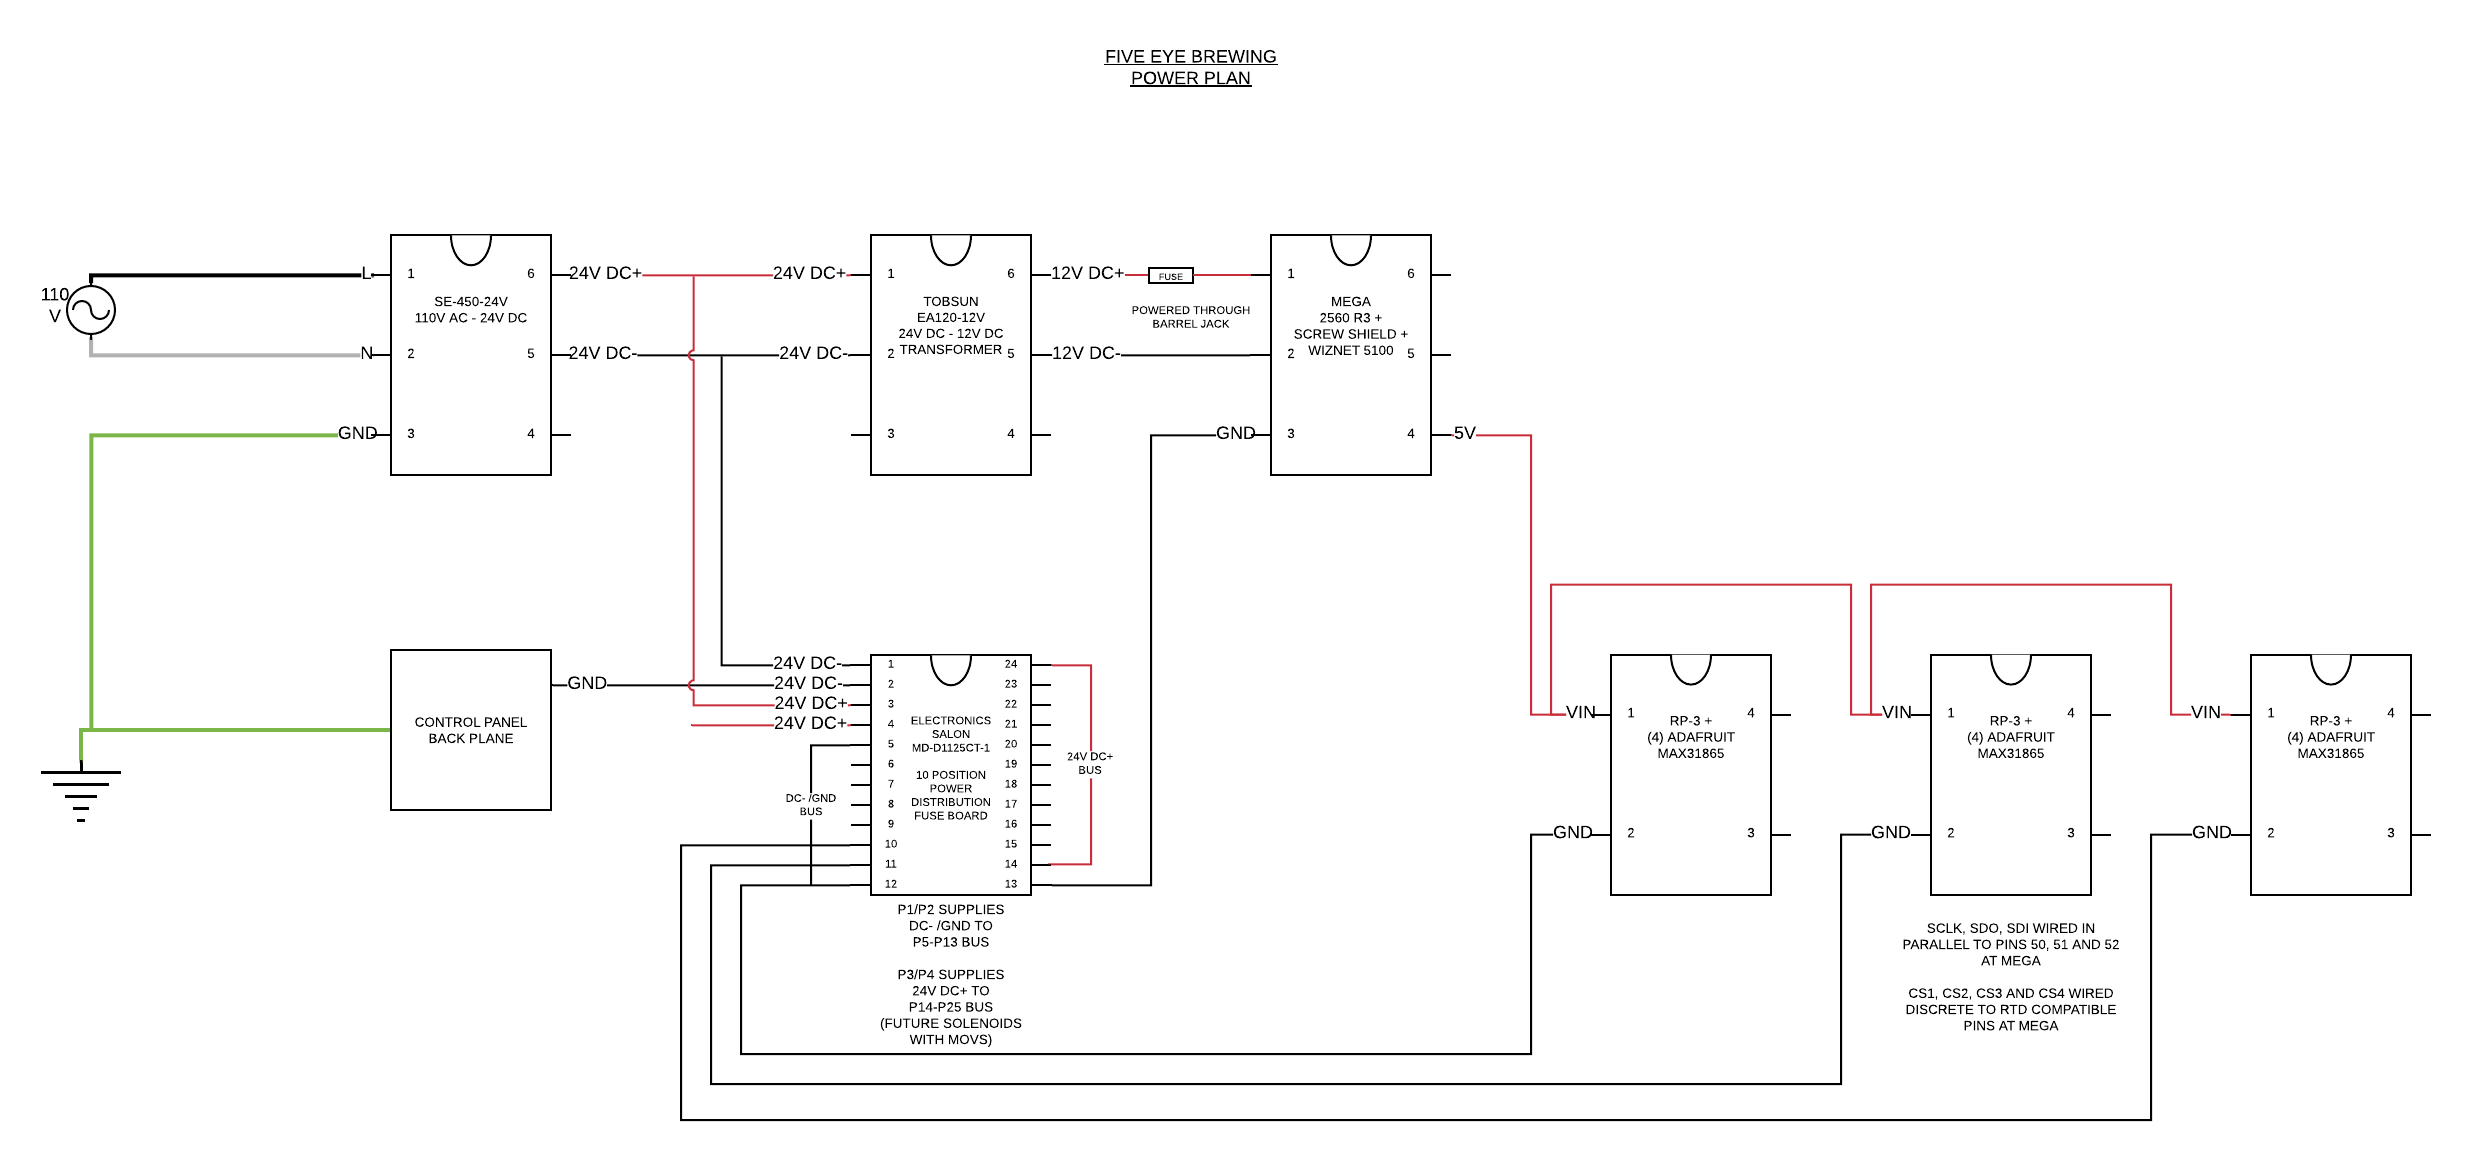 BC Panel Power Plan.png